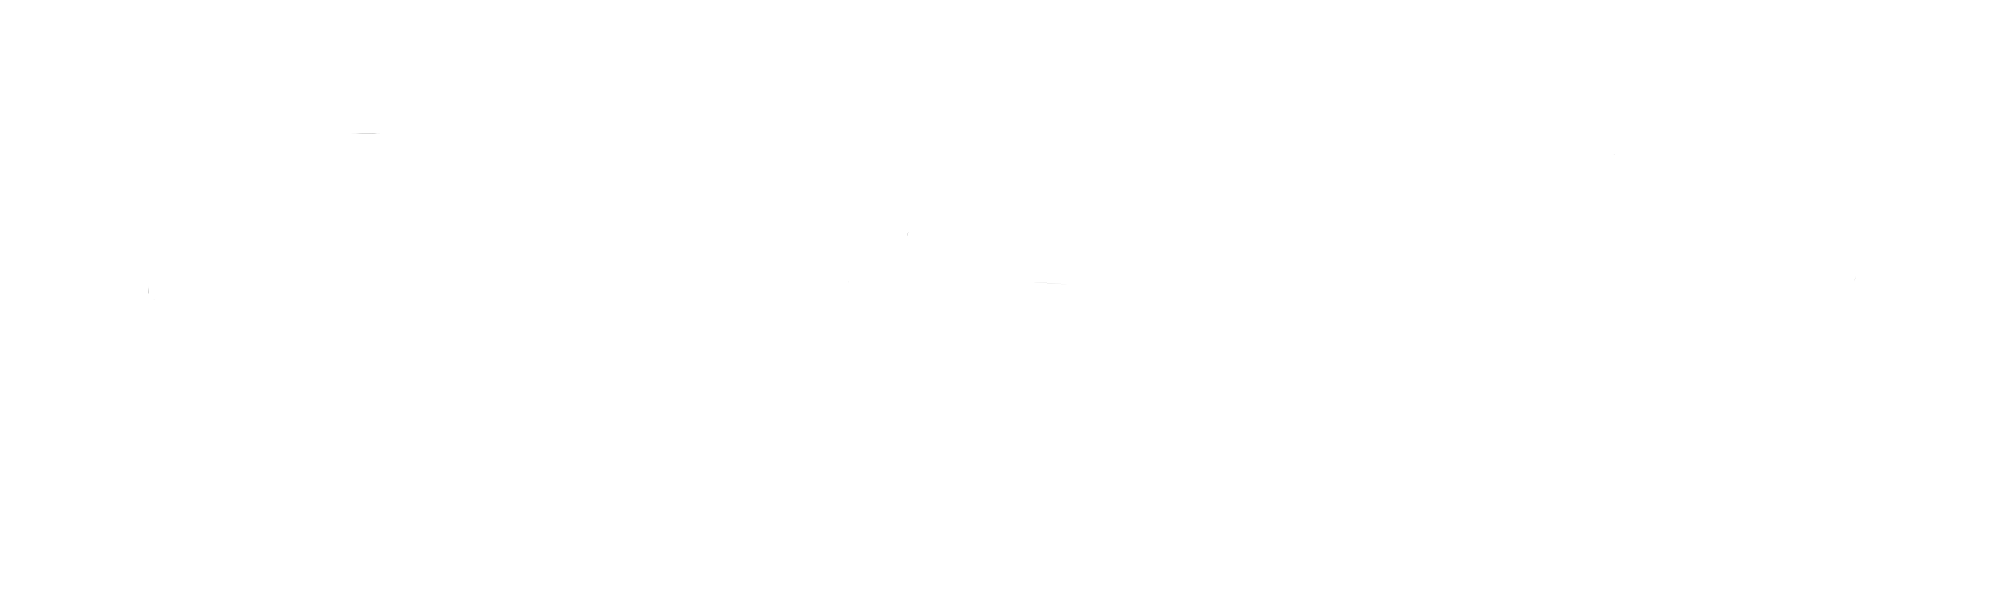 Alan Stuttle Gallery